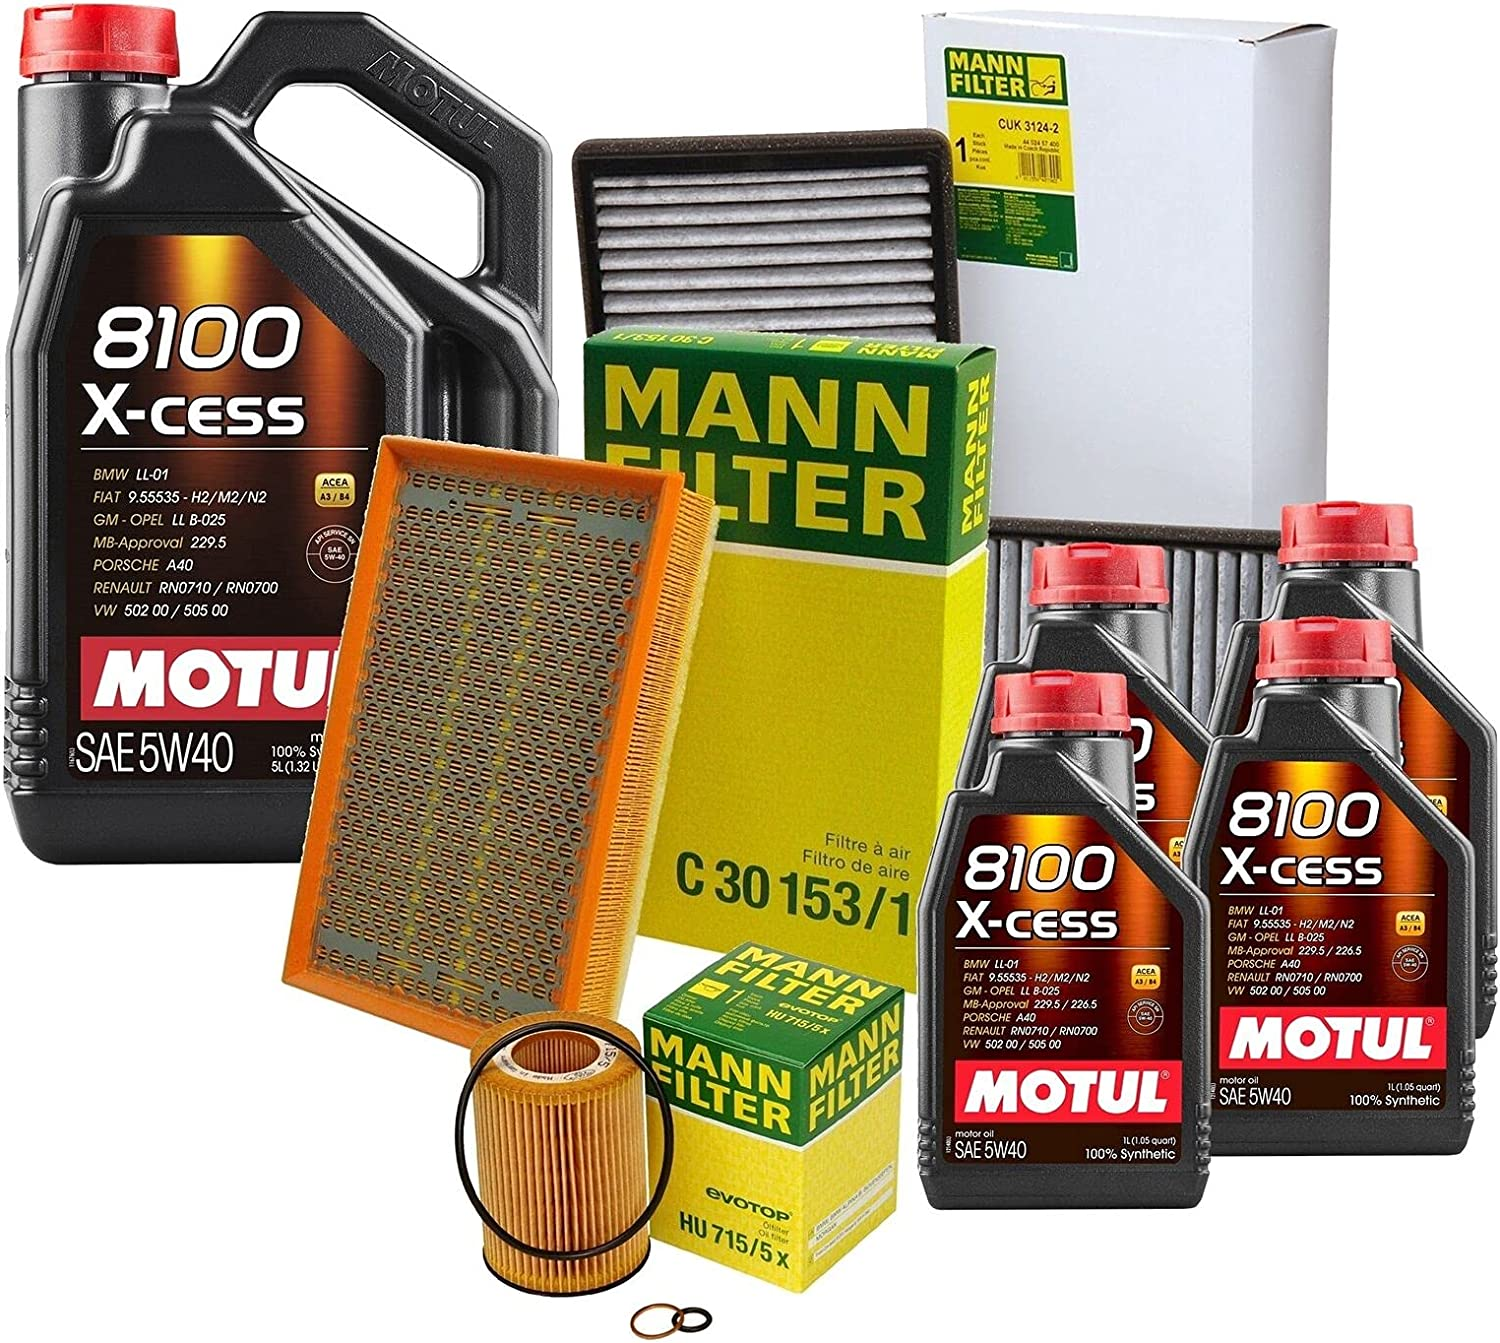 9L 8100 X-CESS Free Shipping Cheap Bargain Gift 5W40 Oil Filter Fort Worth Mall Compatible E kit BMW with Service